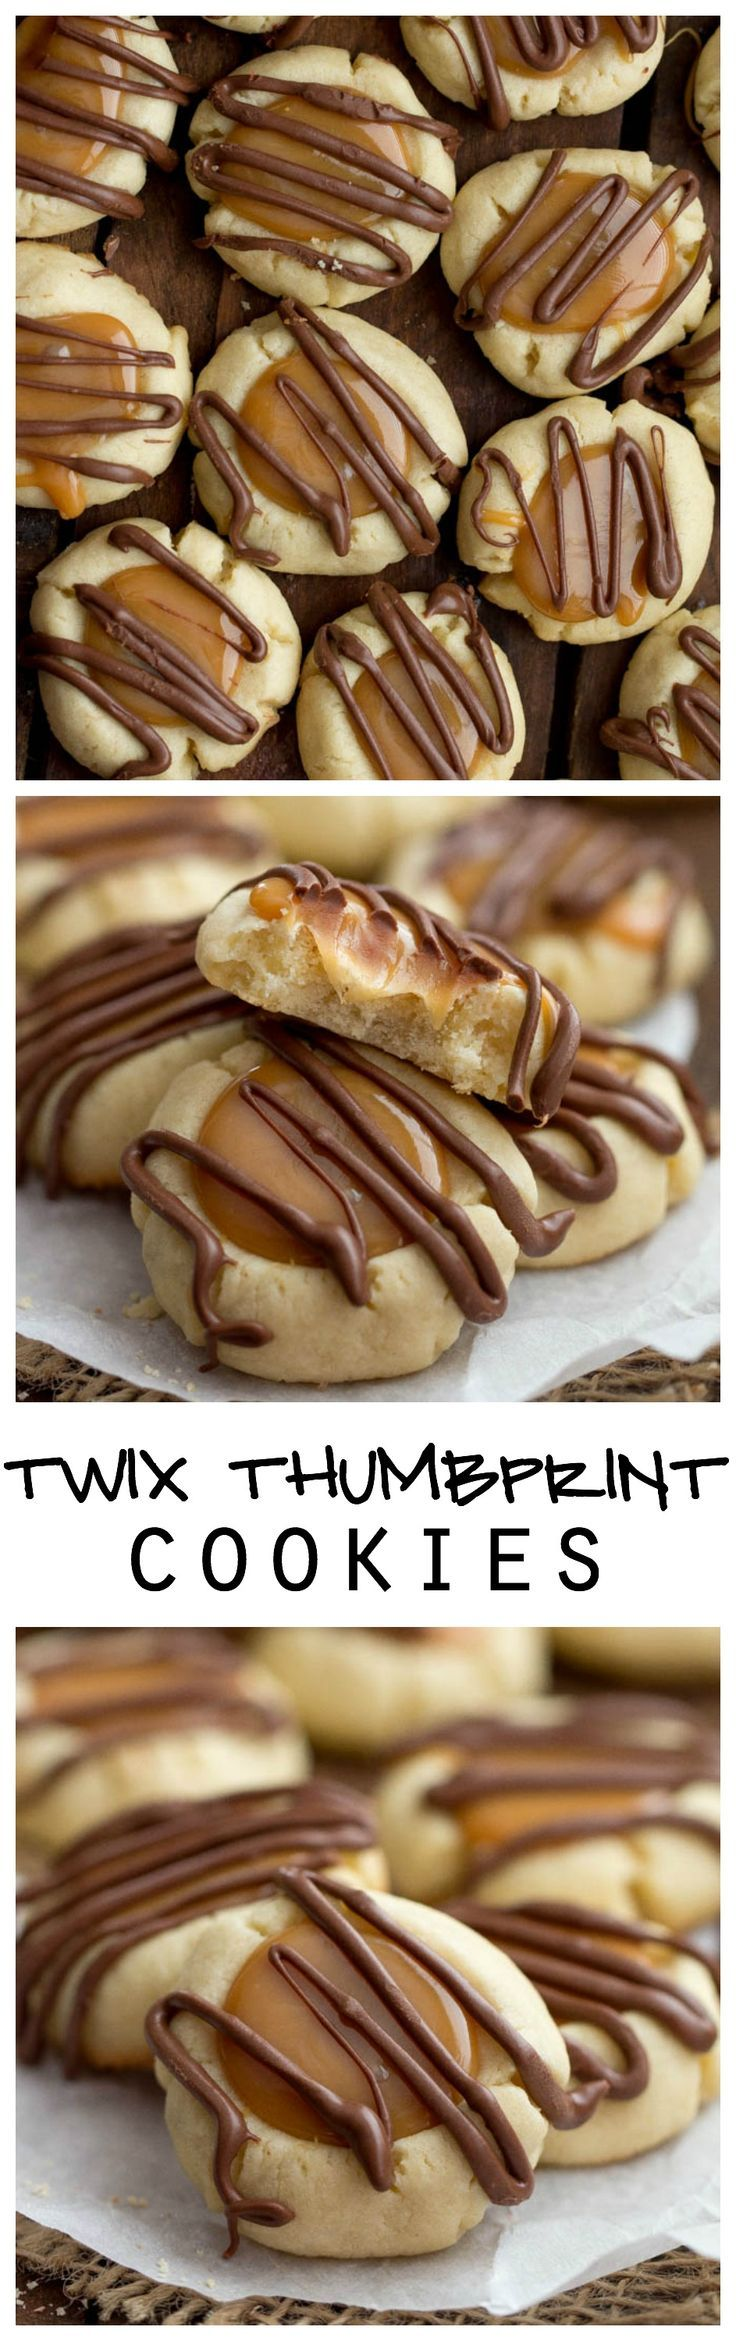 Make your own Twix cookie recipe.